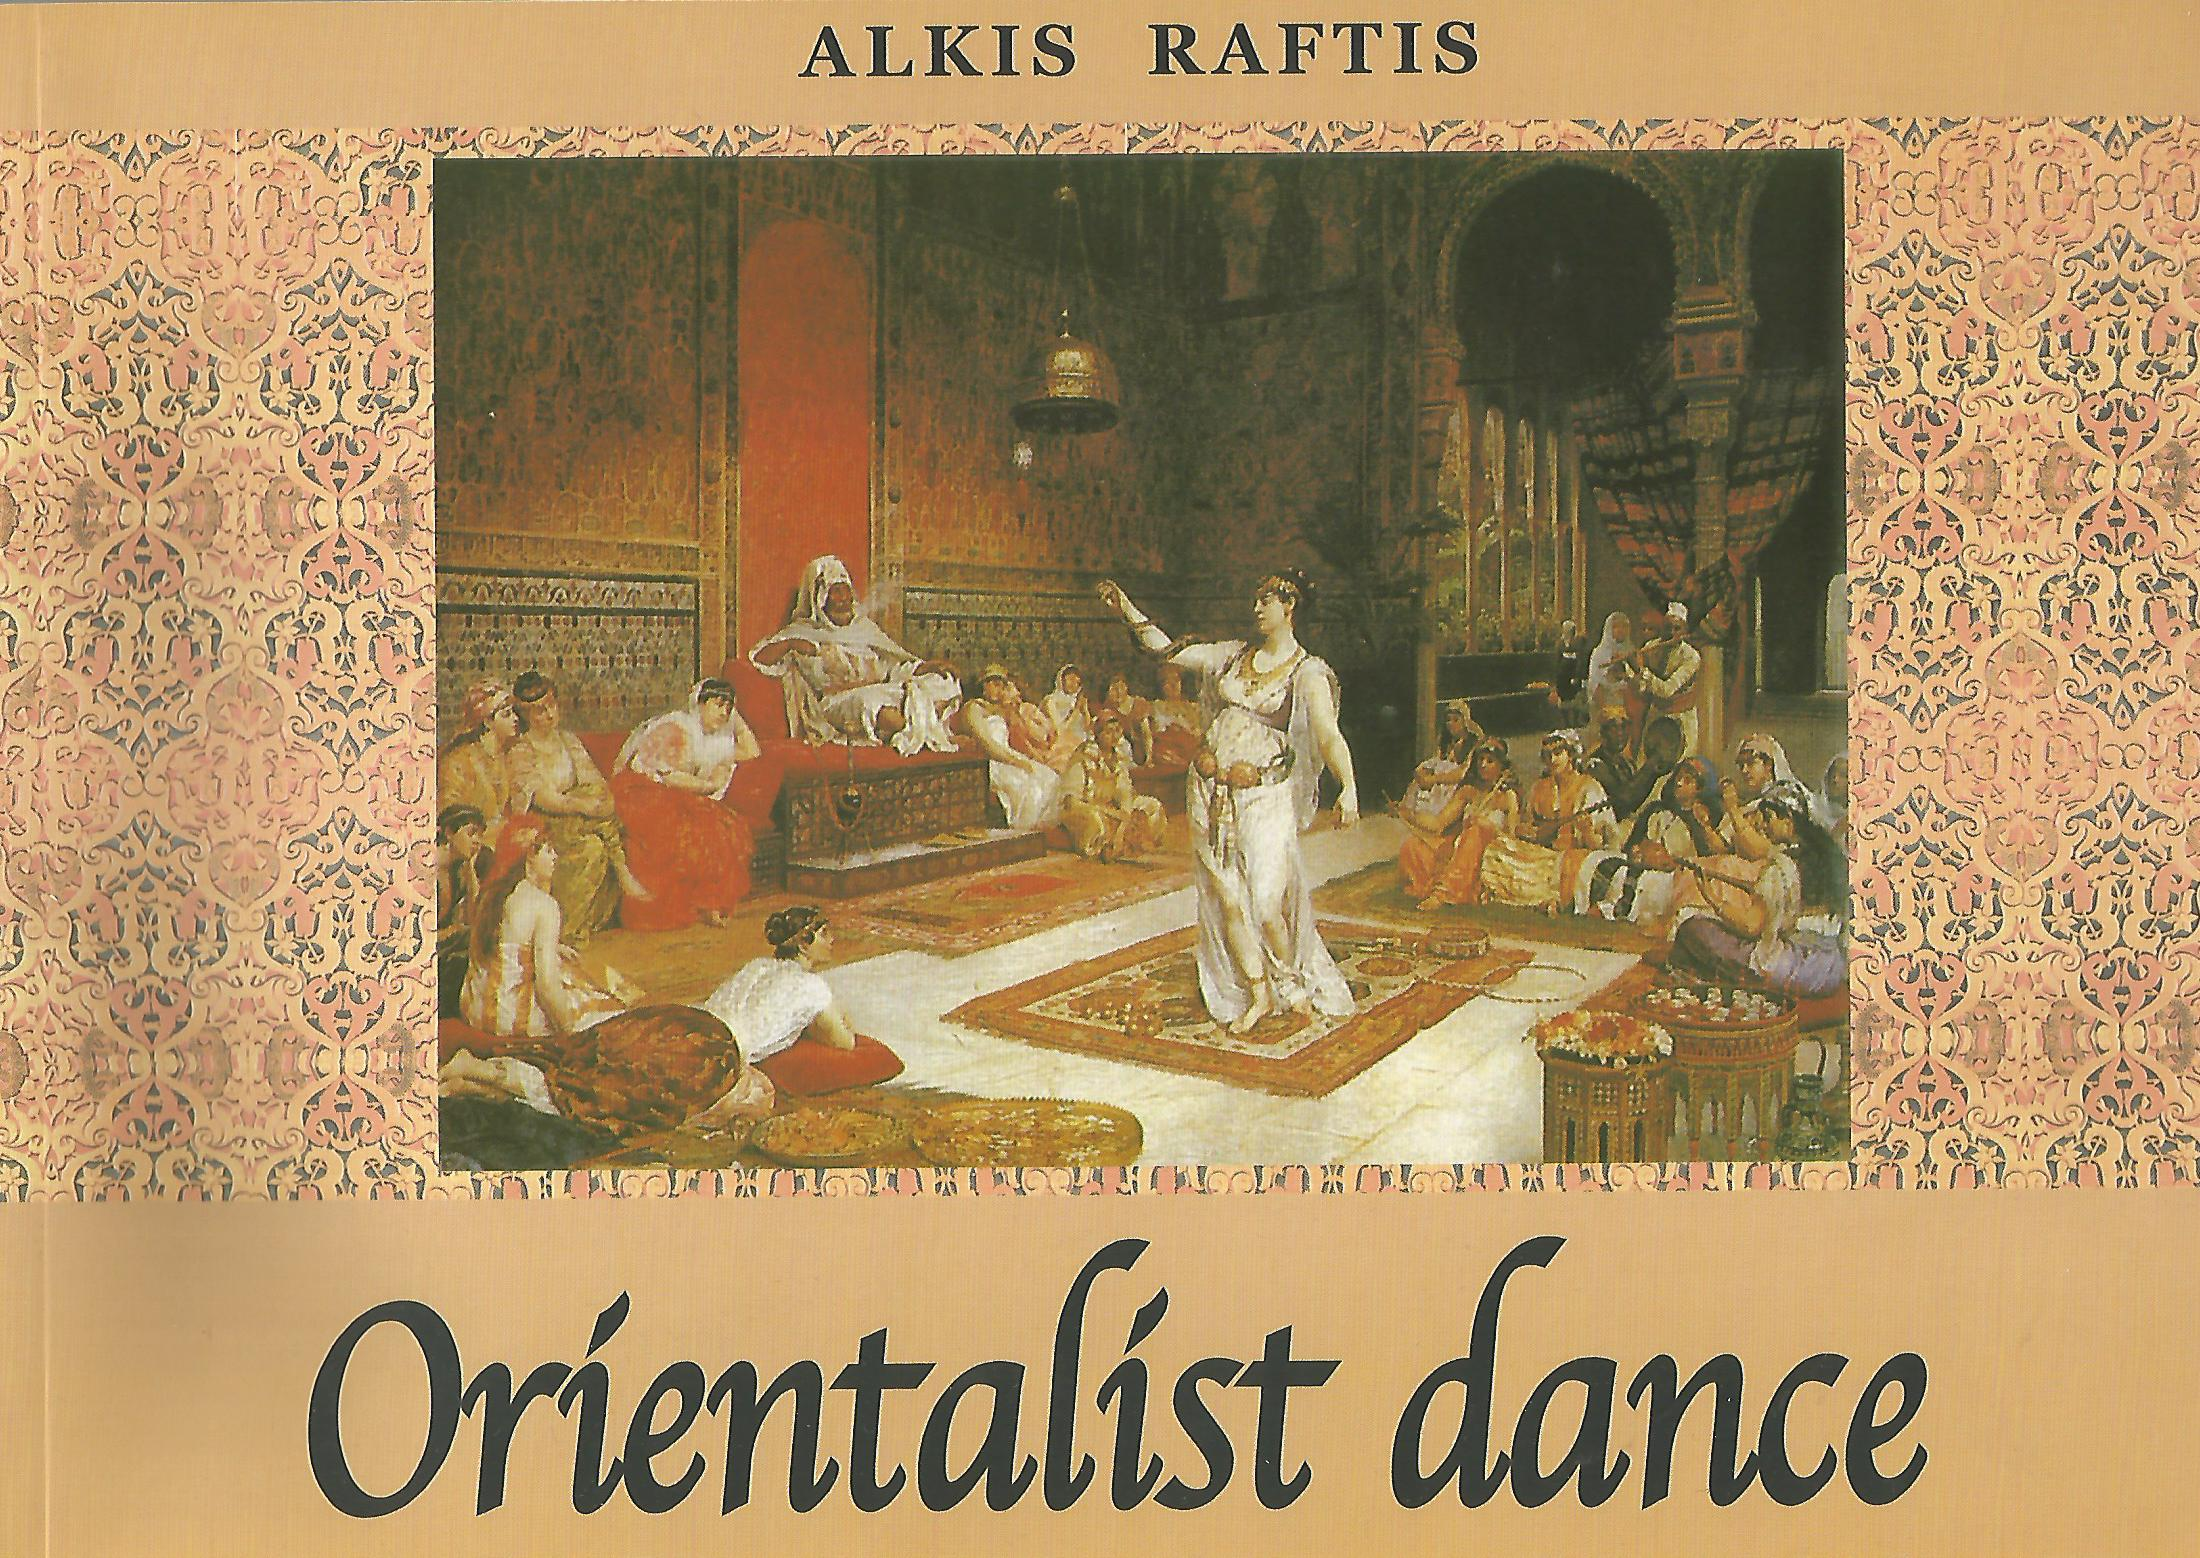 Orientalist dance. Paintings and travellers accounts